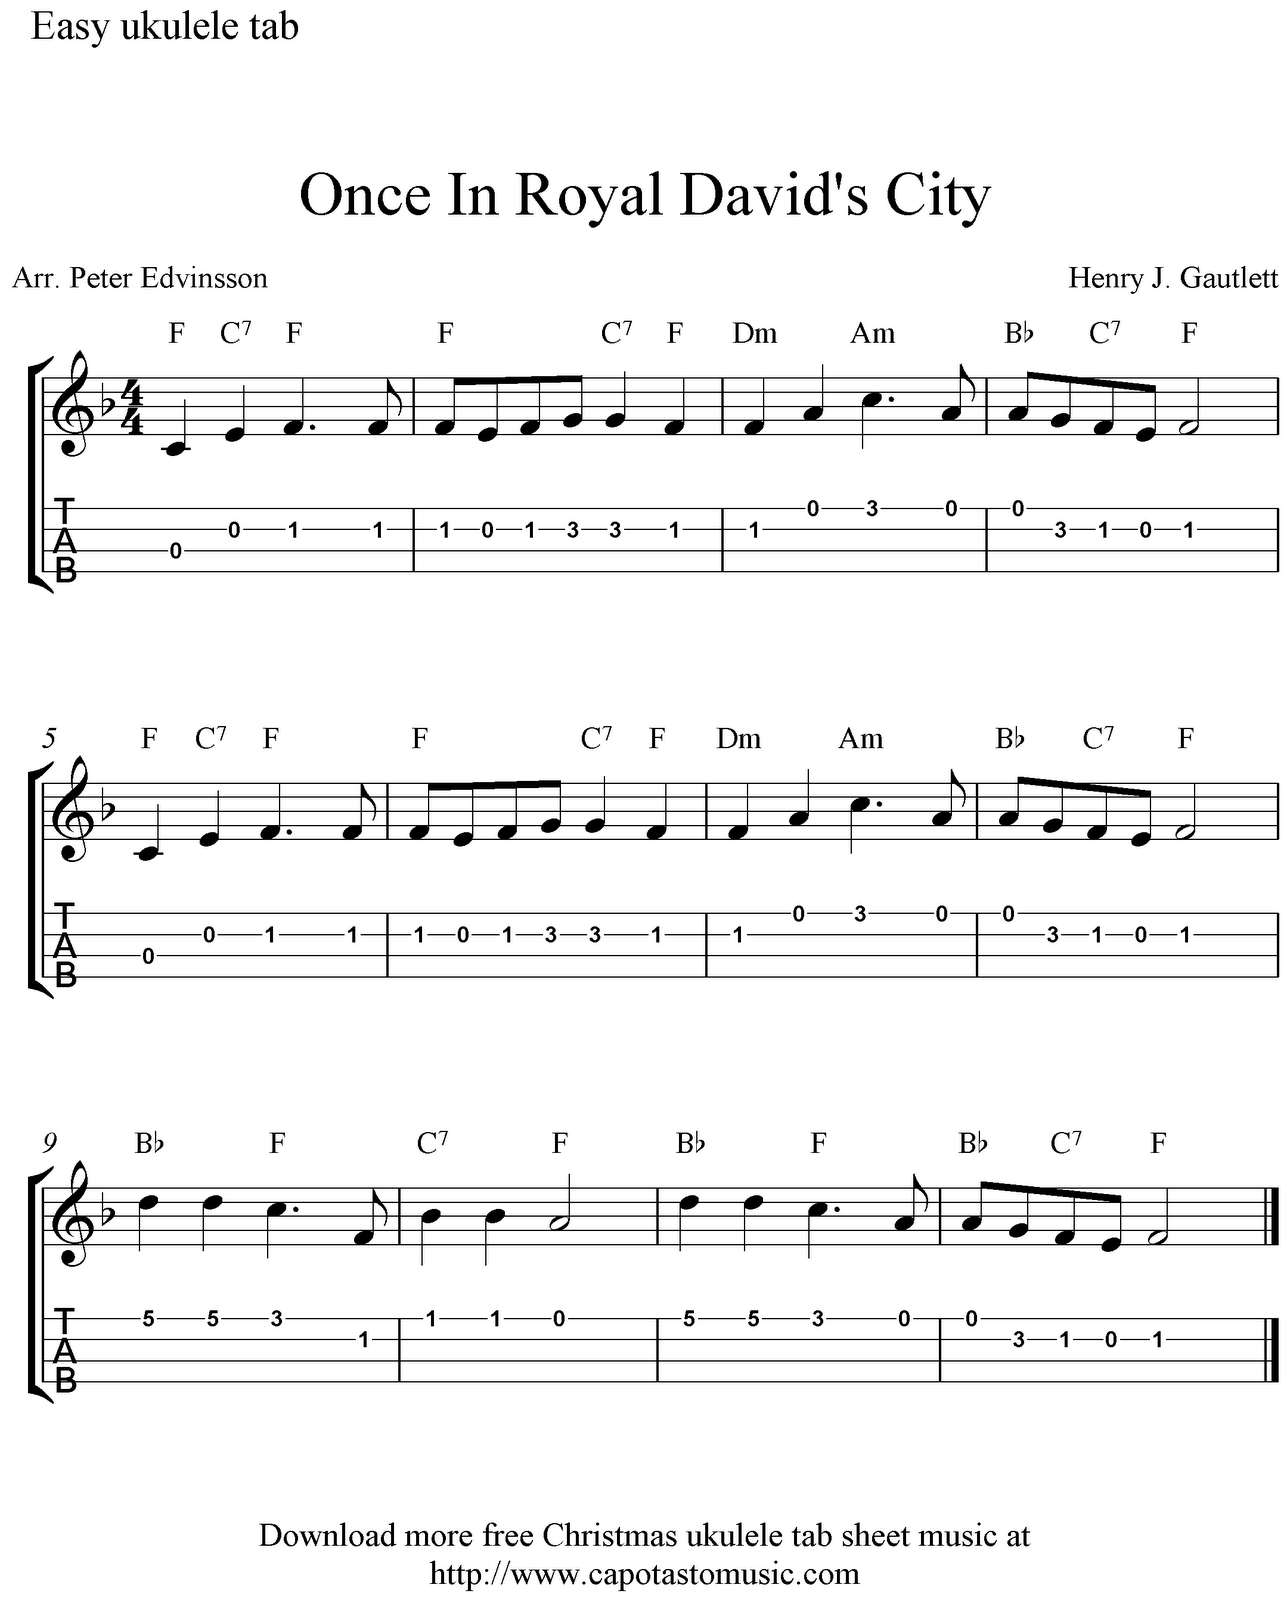 Free Christmas ukulele tab sheet music, Once In Royal Davidu0026#39;s City